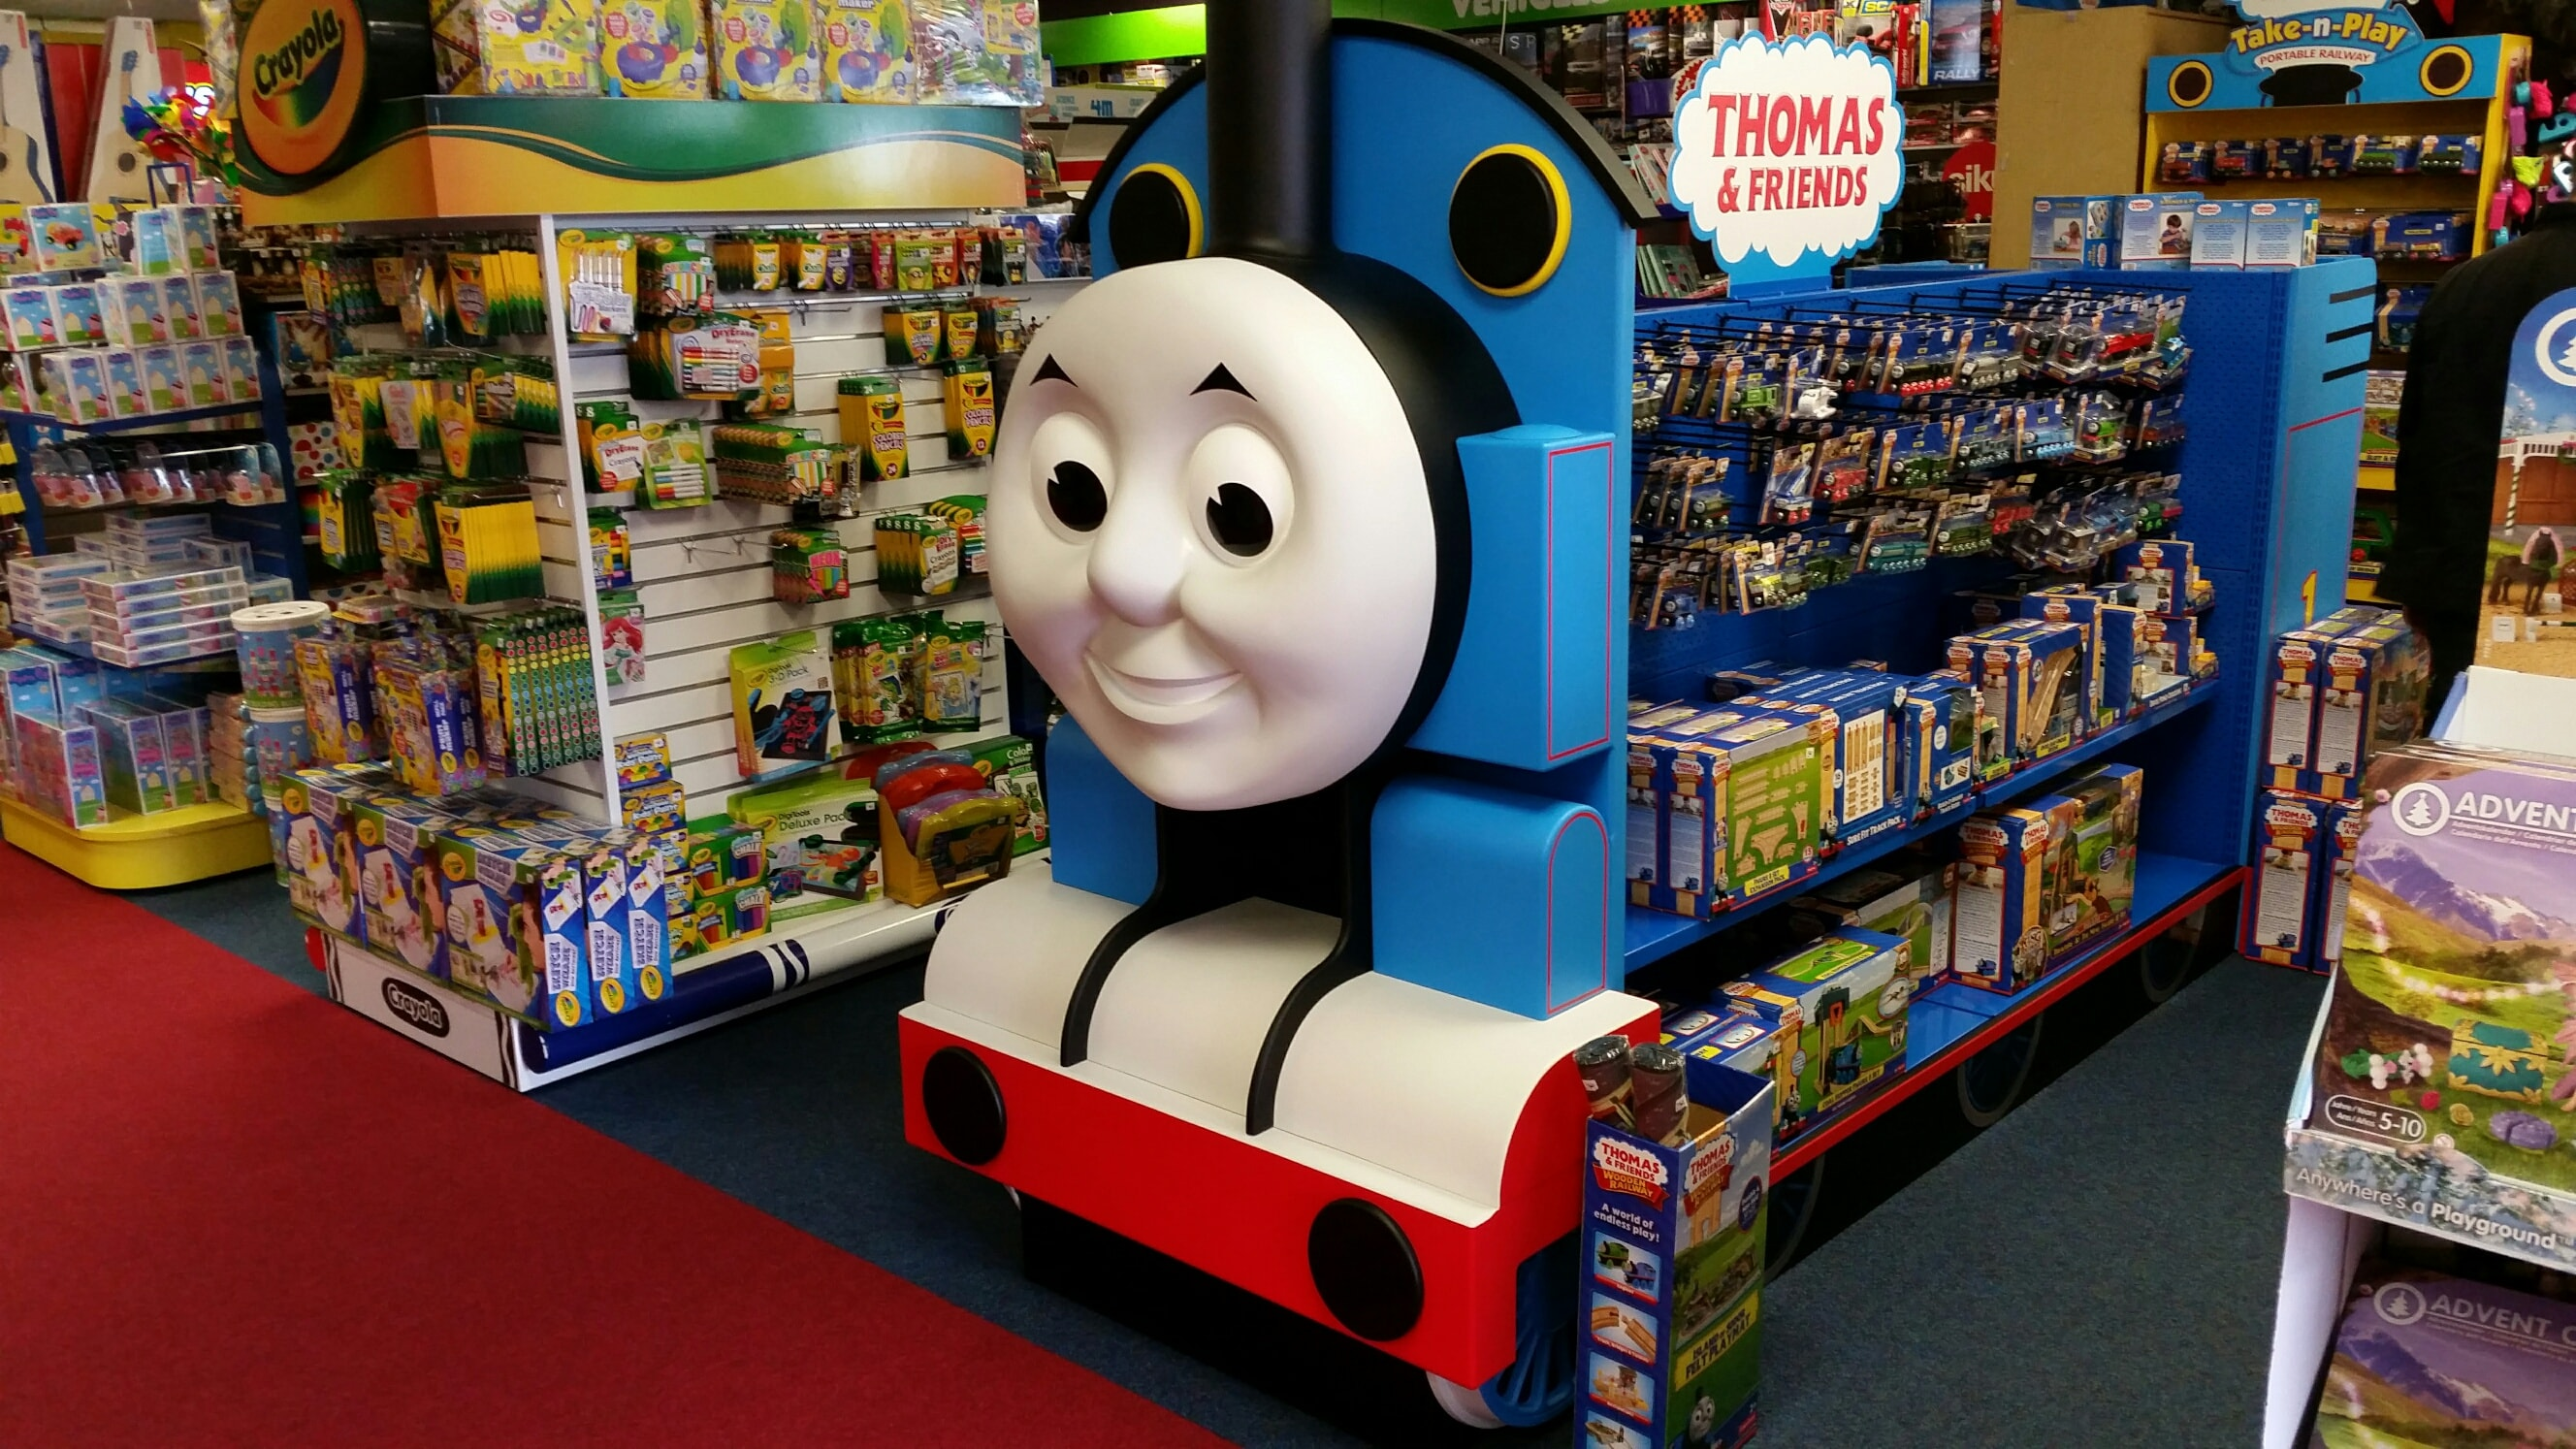 Thomas the Tank display